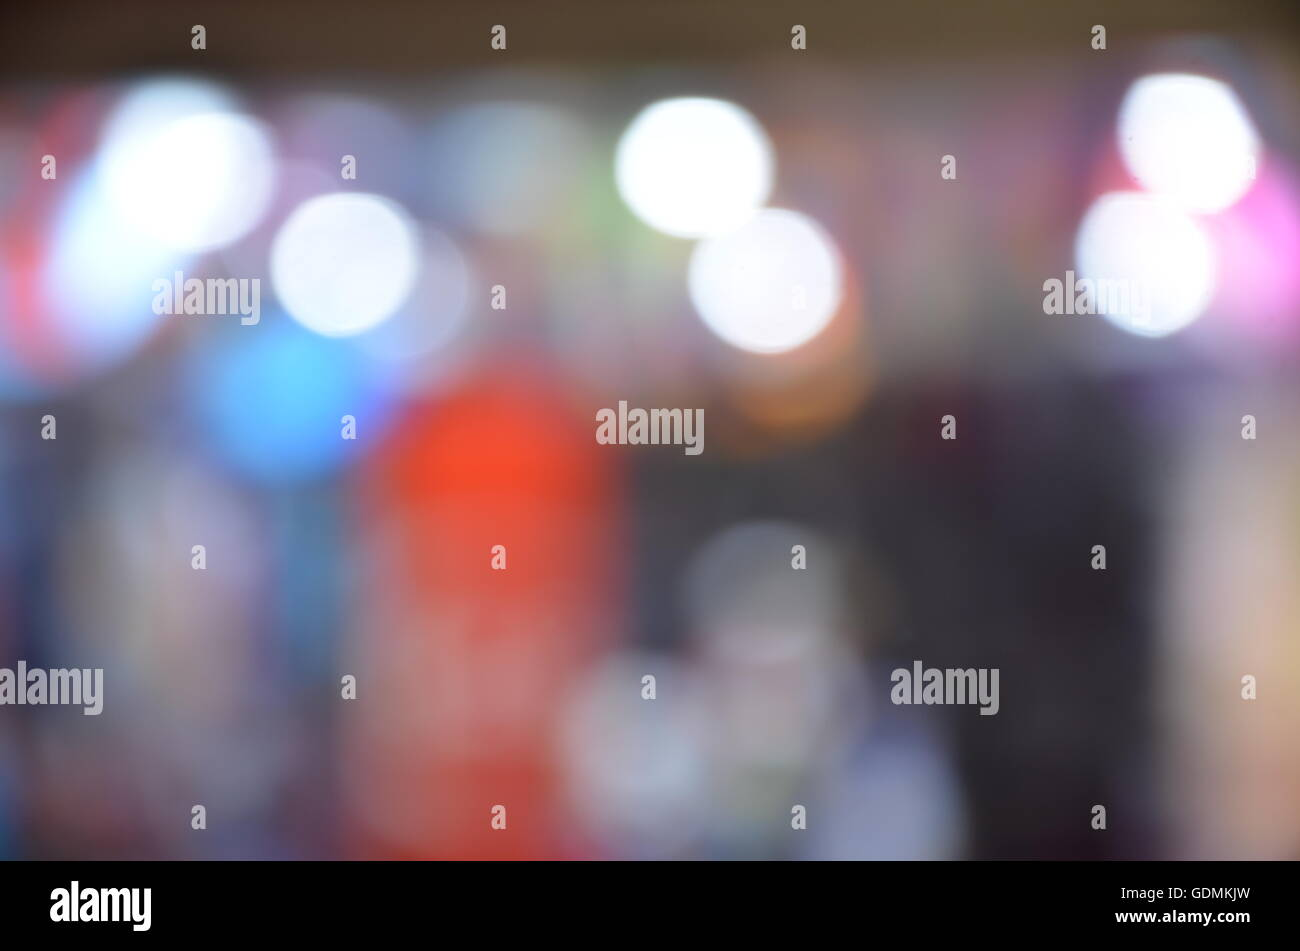 light dots, blurred background, red, blue, blurred, white circle, dotted, shine, lightbulb, round, darkness, glitter - Stock Image